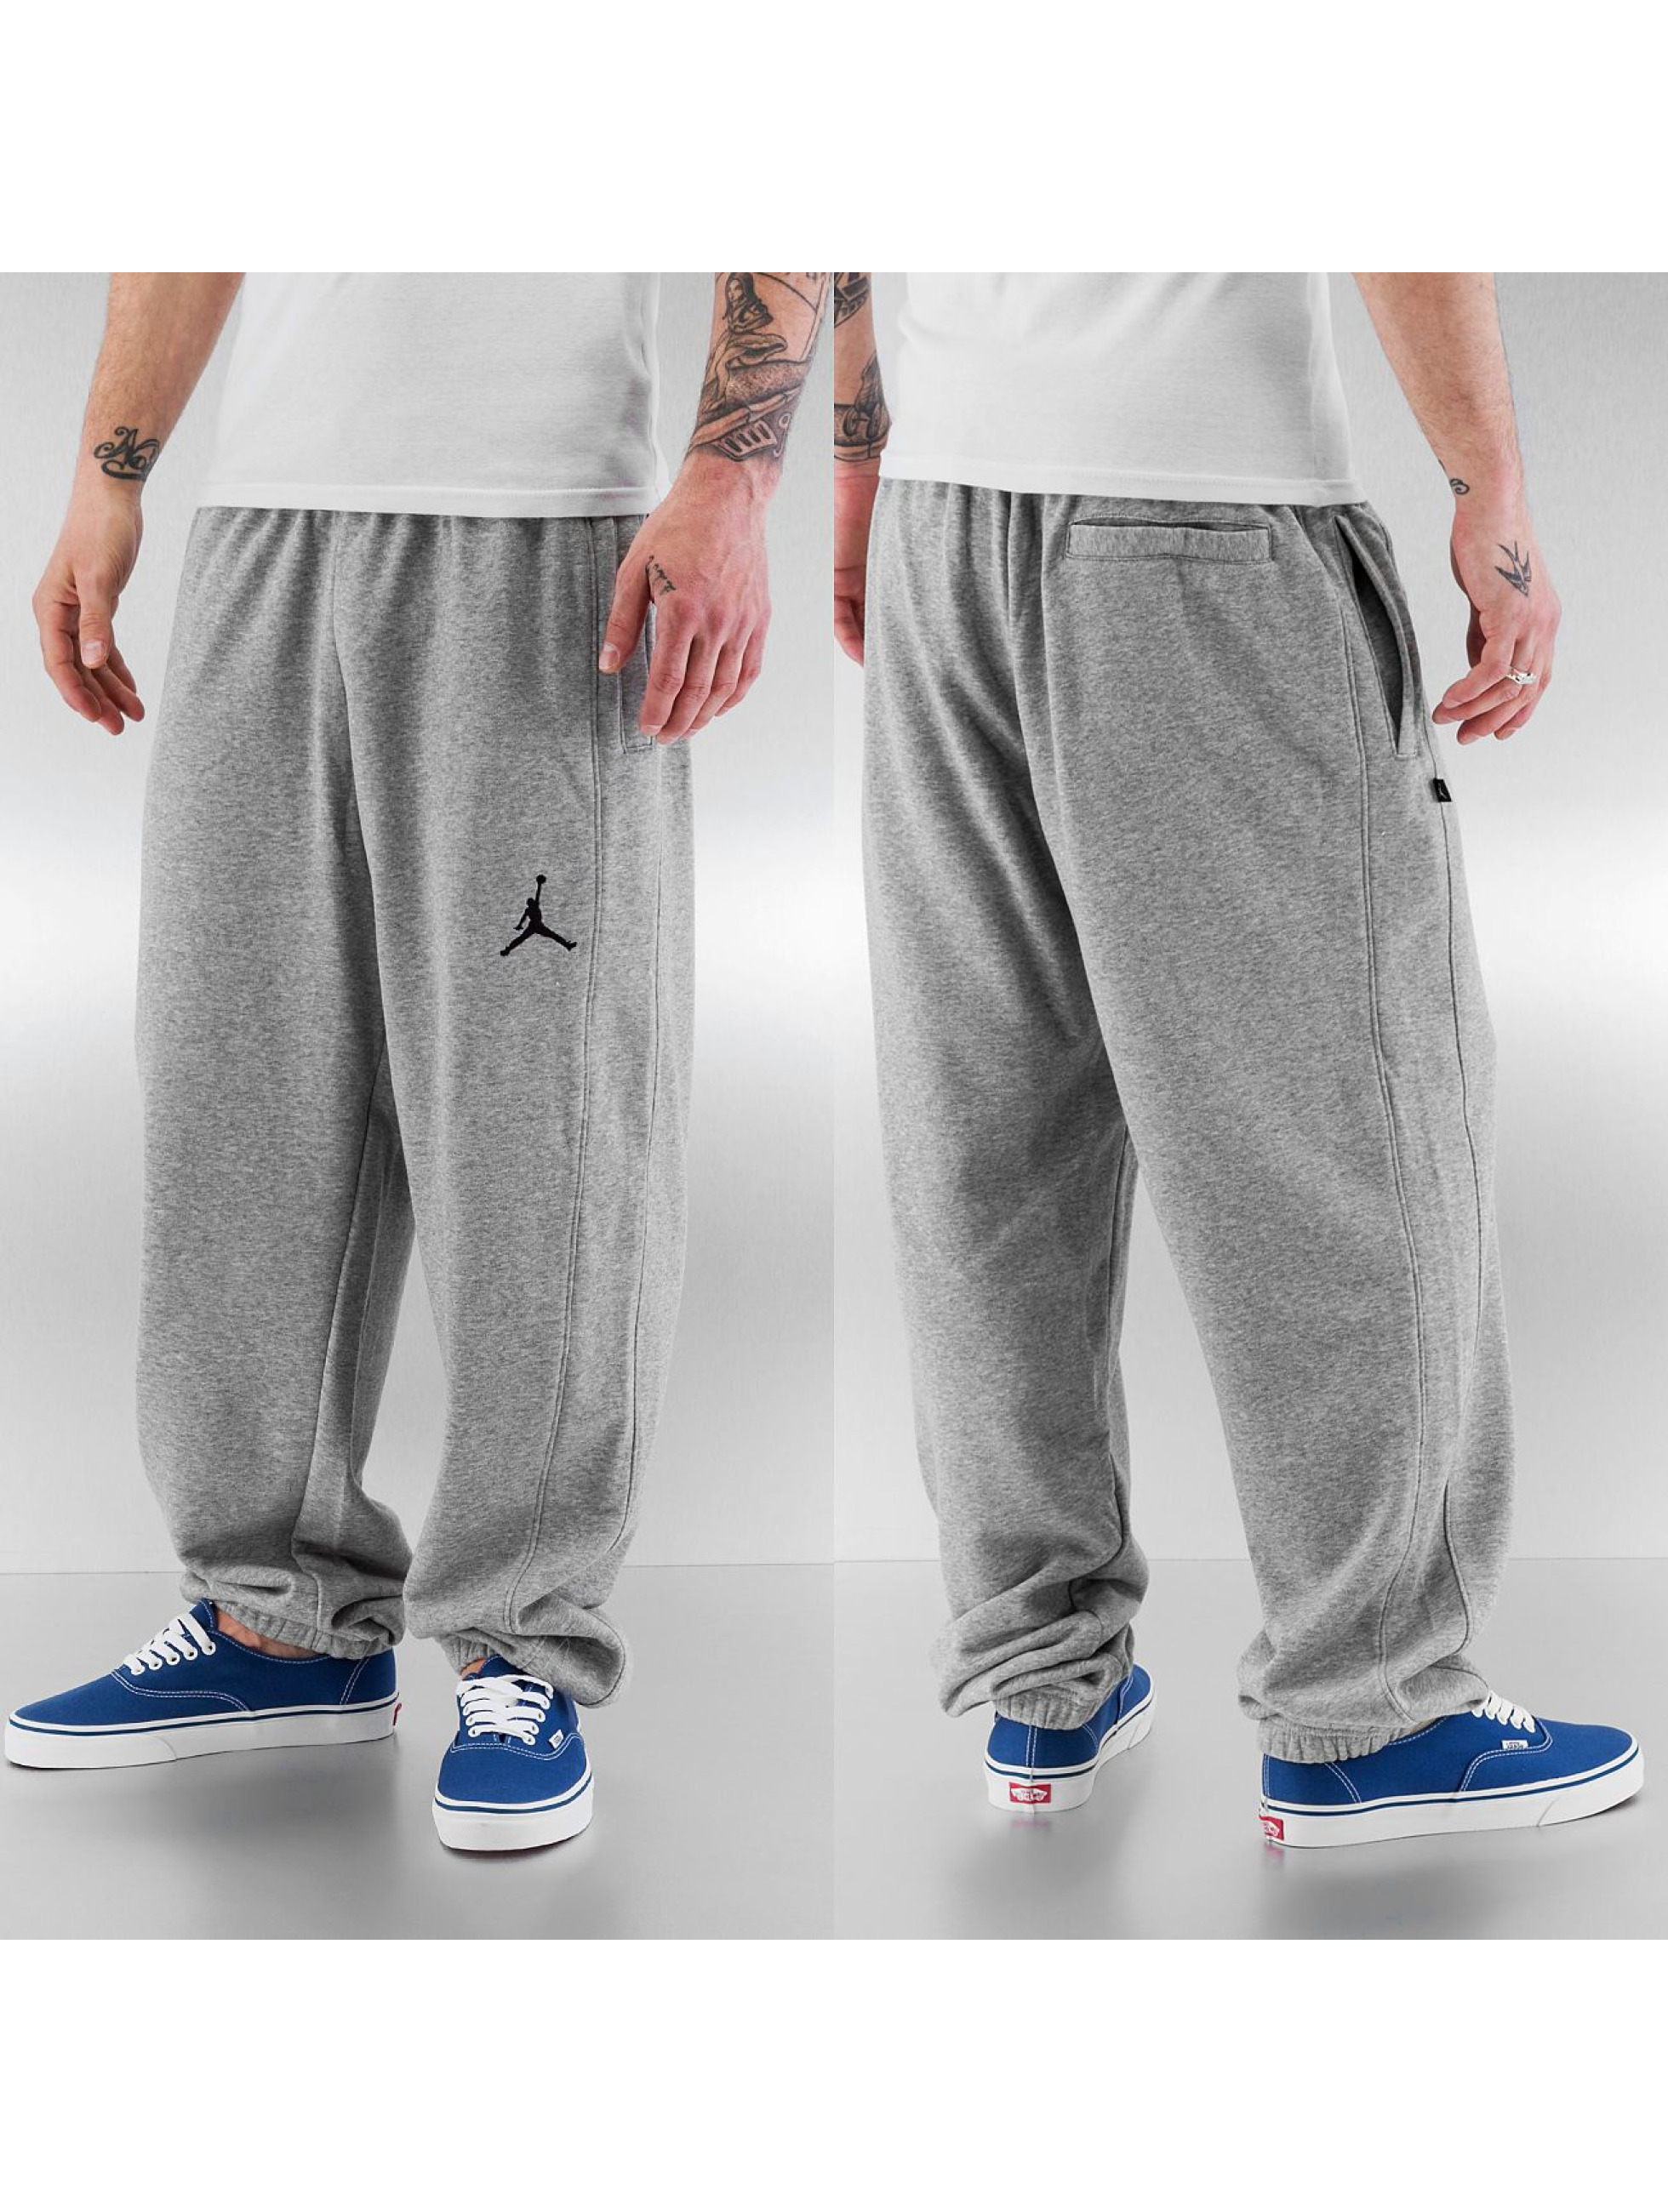 jogging air jordan pas cher